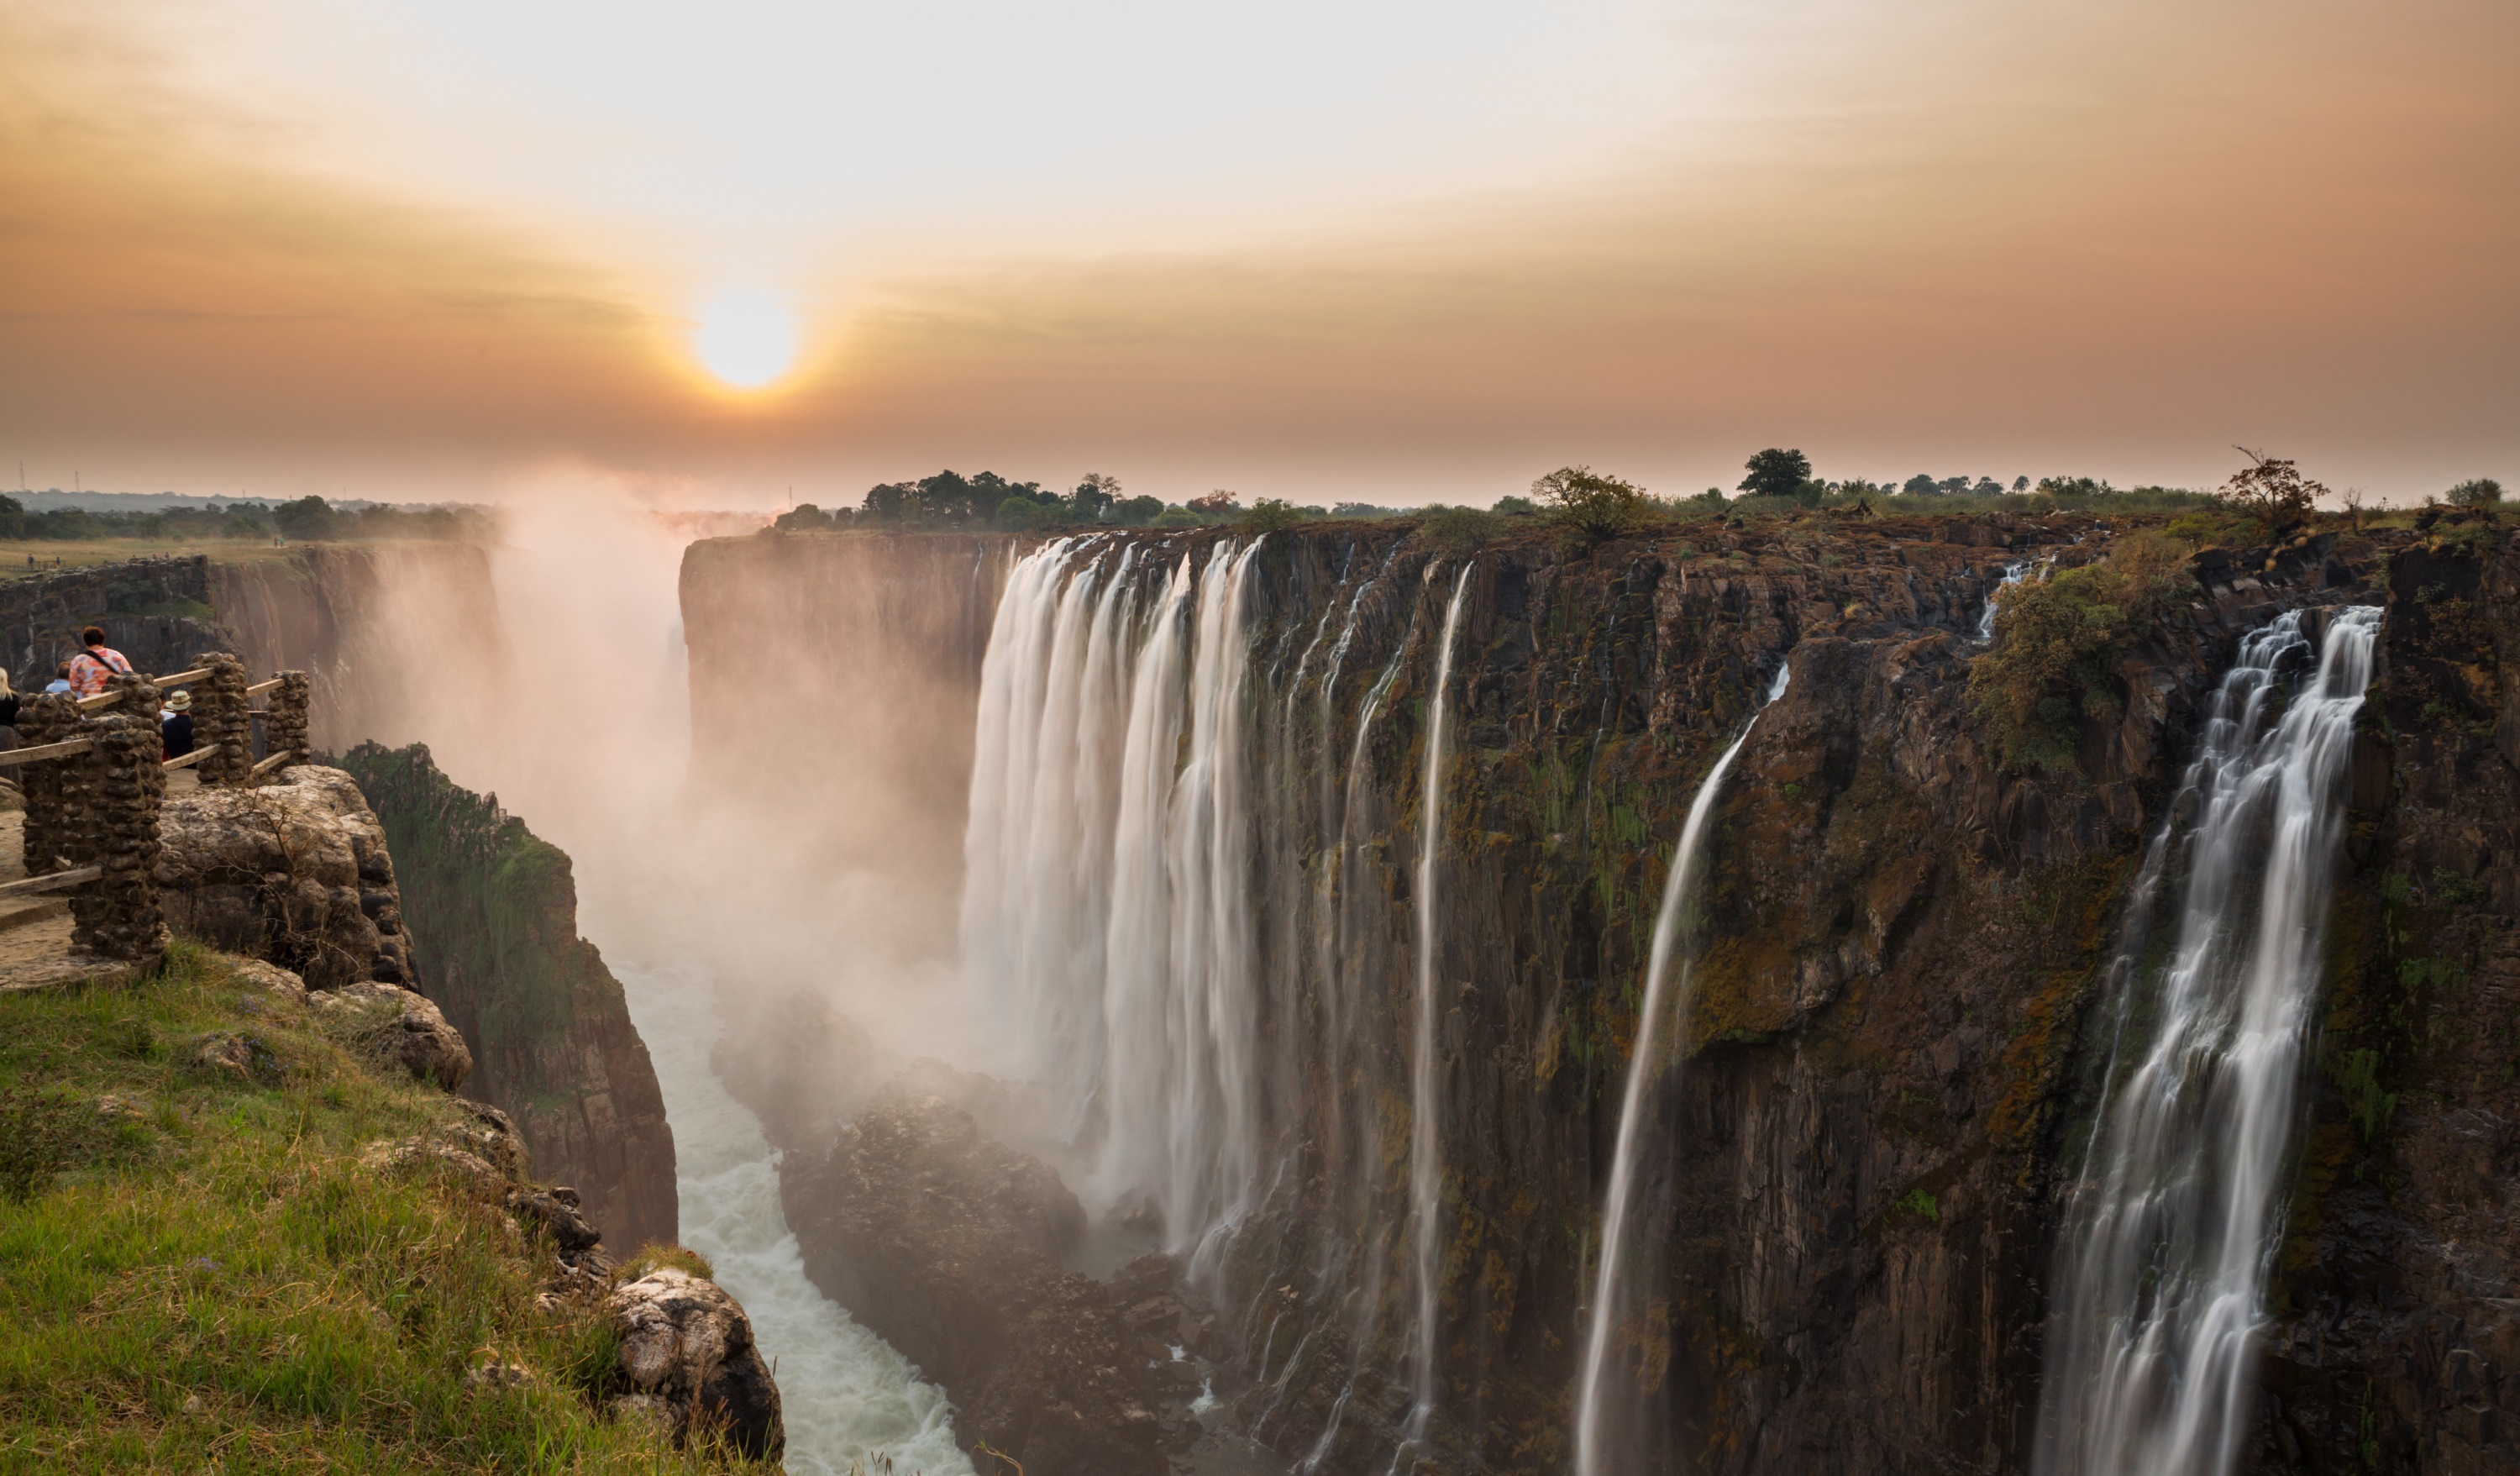 Victoria Falls taken on a slow shutter speed